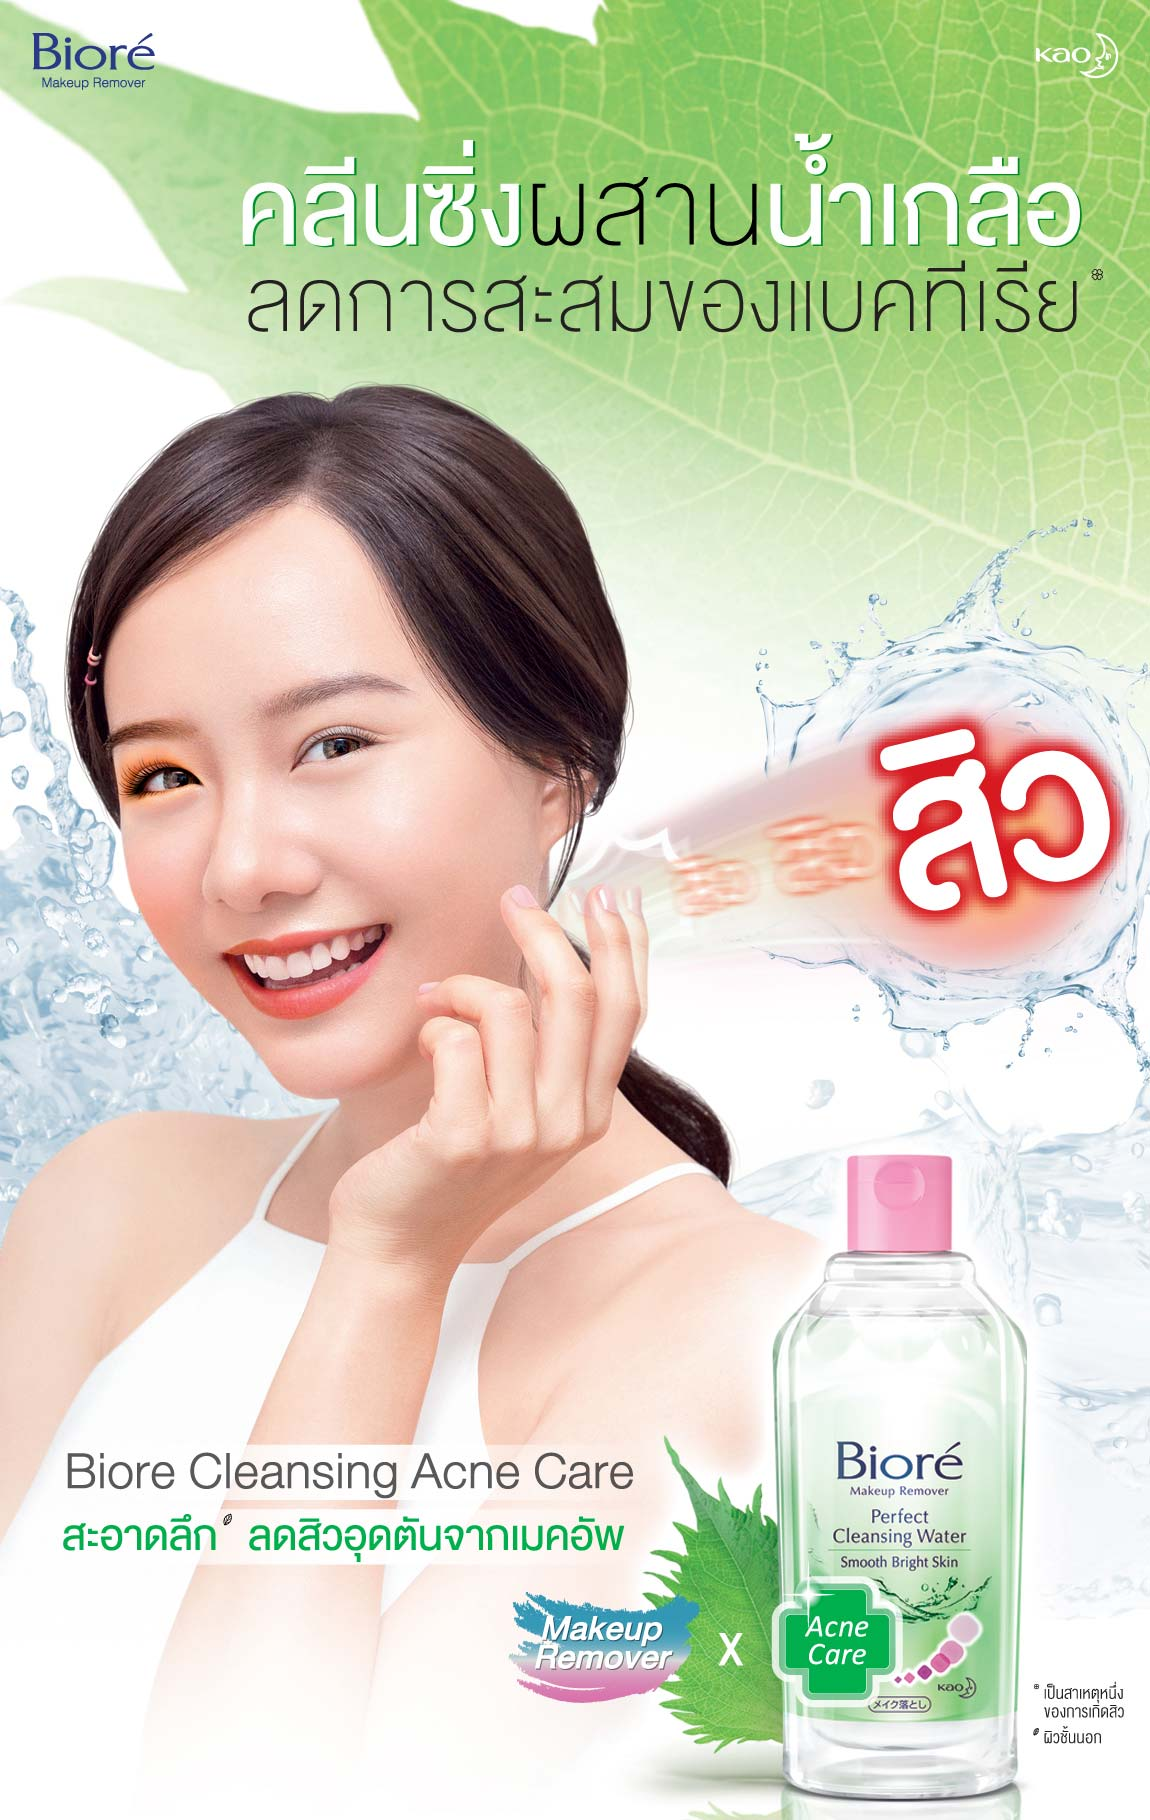 Biore Perfect Cleansing Water Acne Care